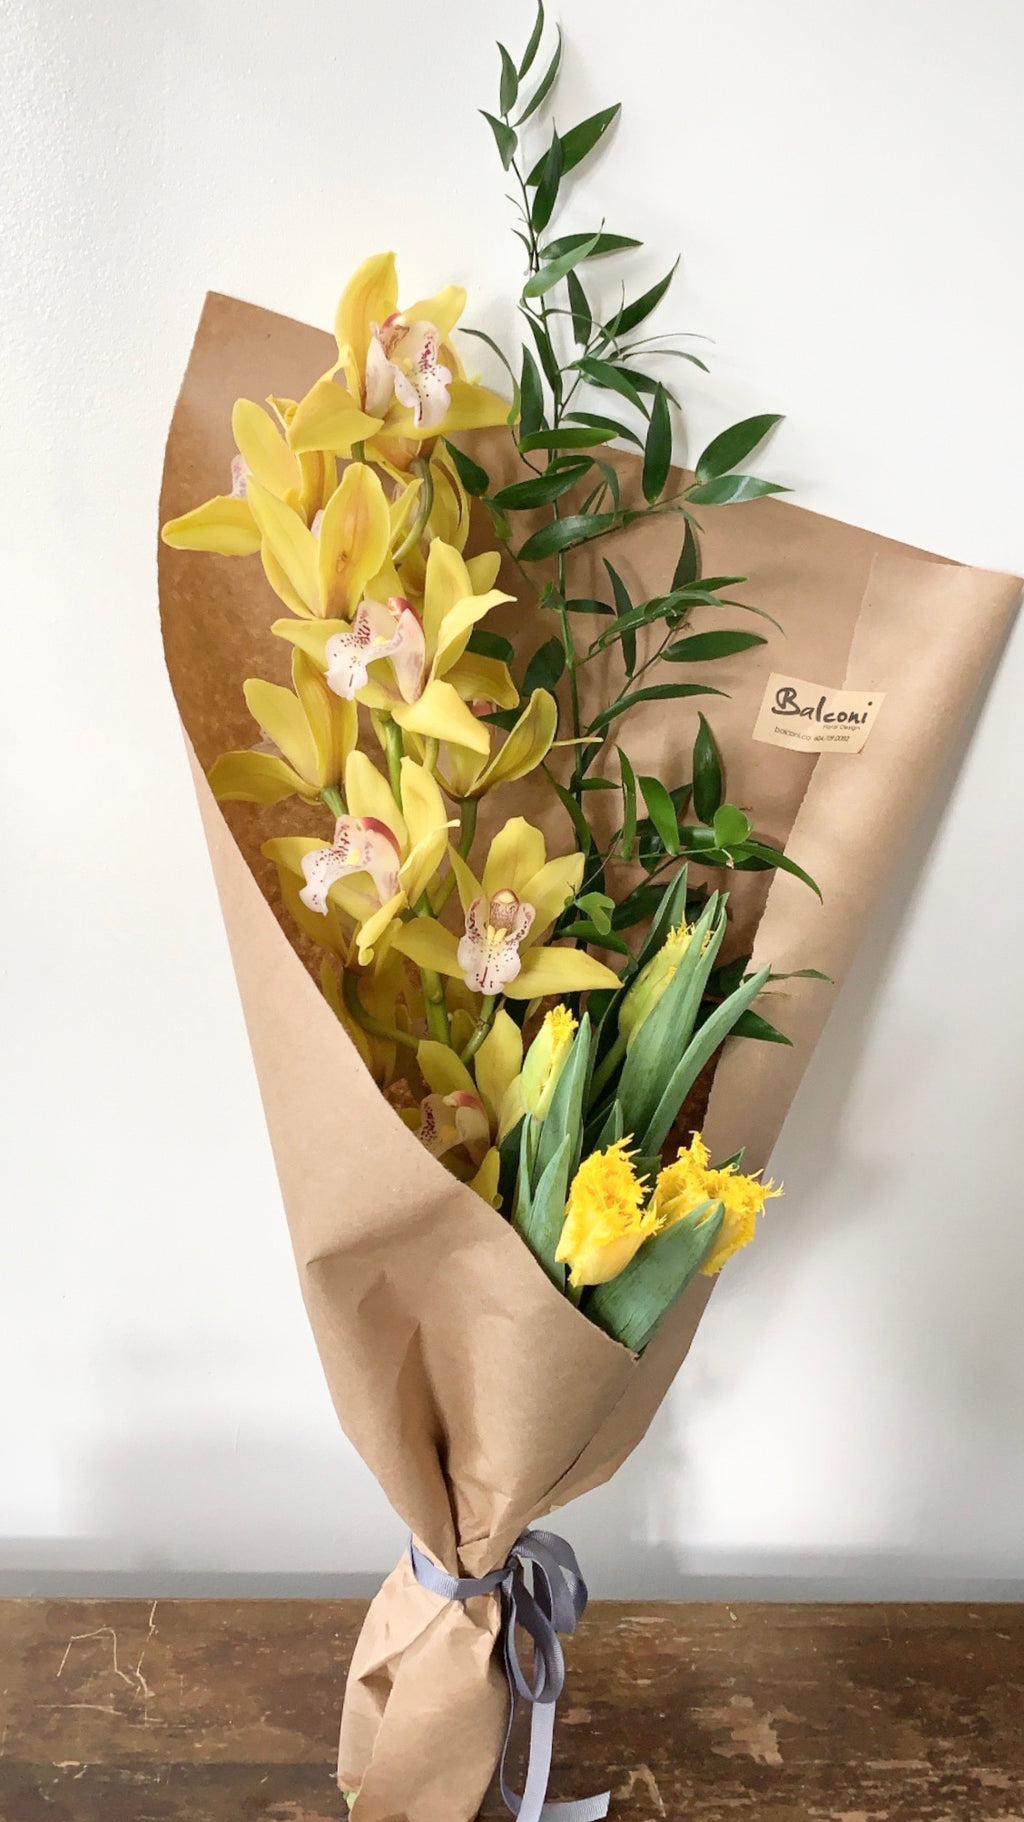 shop.balconi.ca Bouquet Simple Pleasure